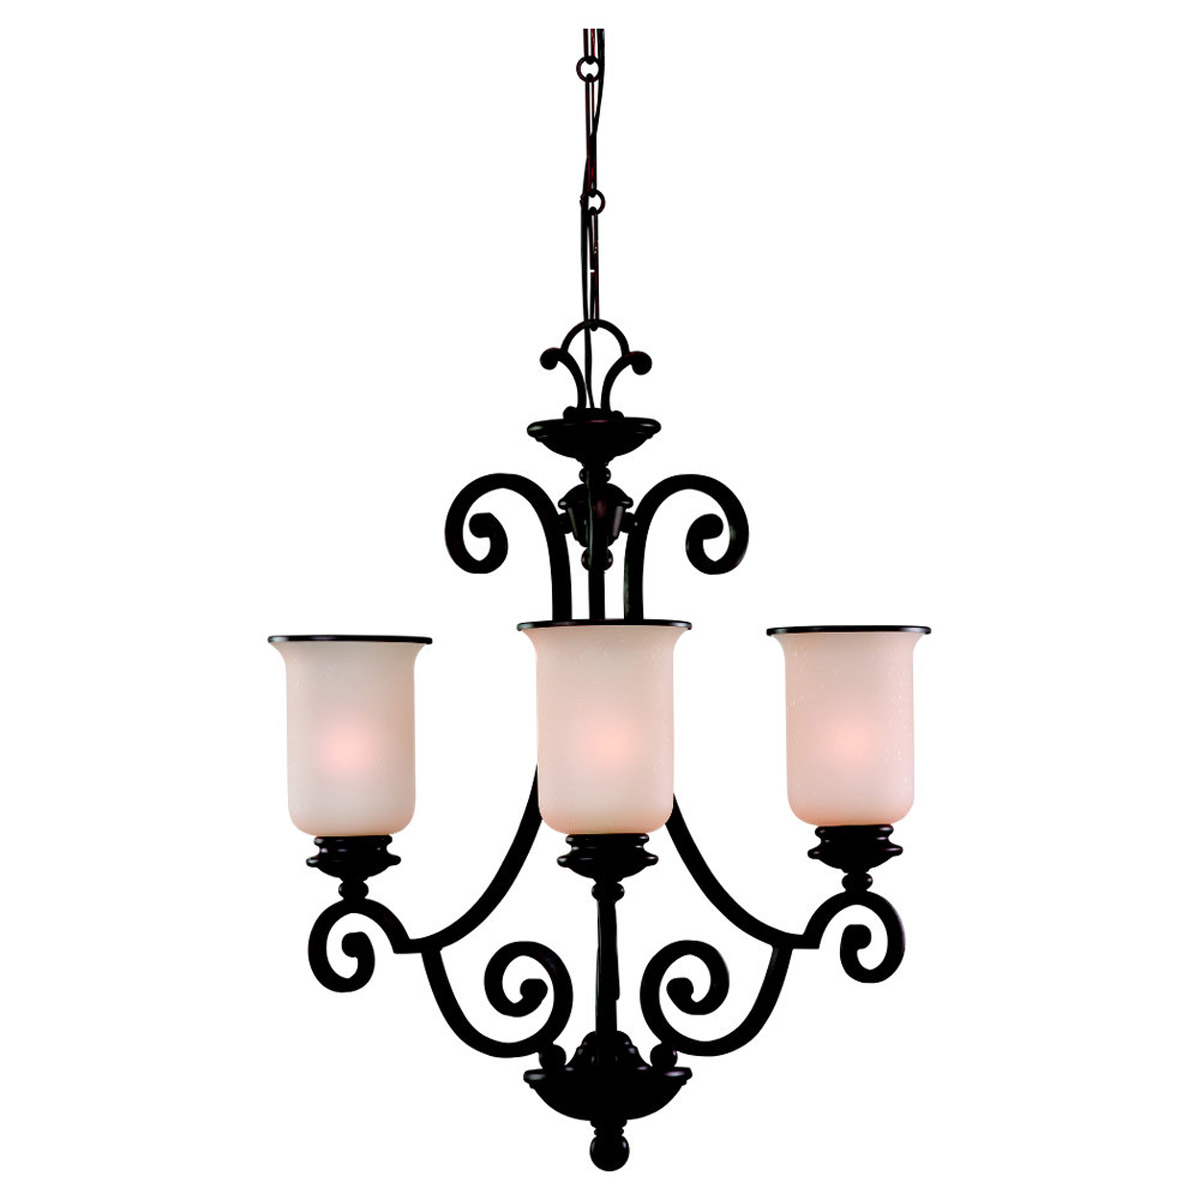 Sea Gull Lighting Acadia 3 Light Chandelier in Misted Bronze 31145-814